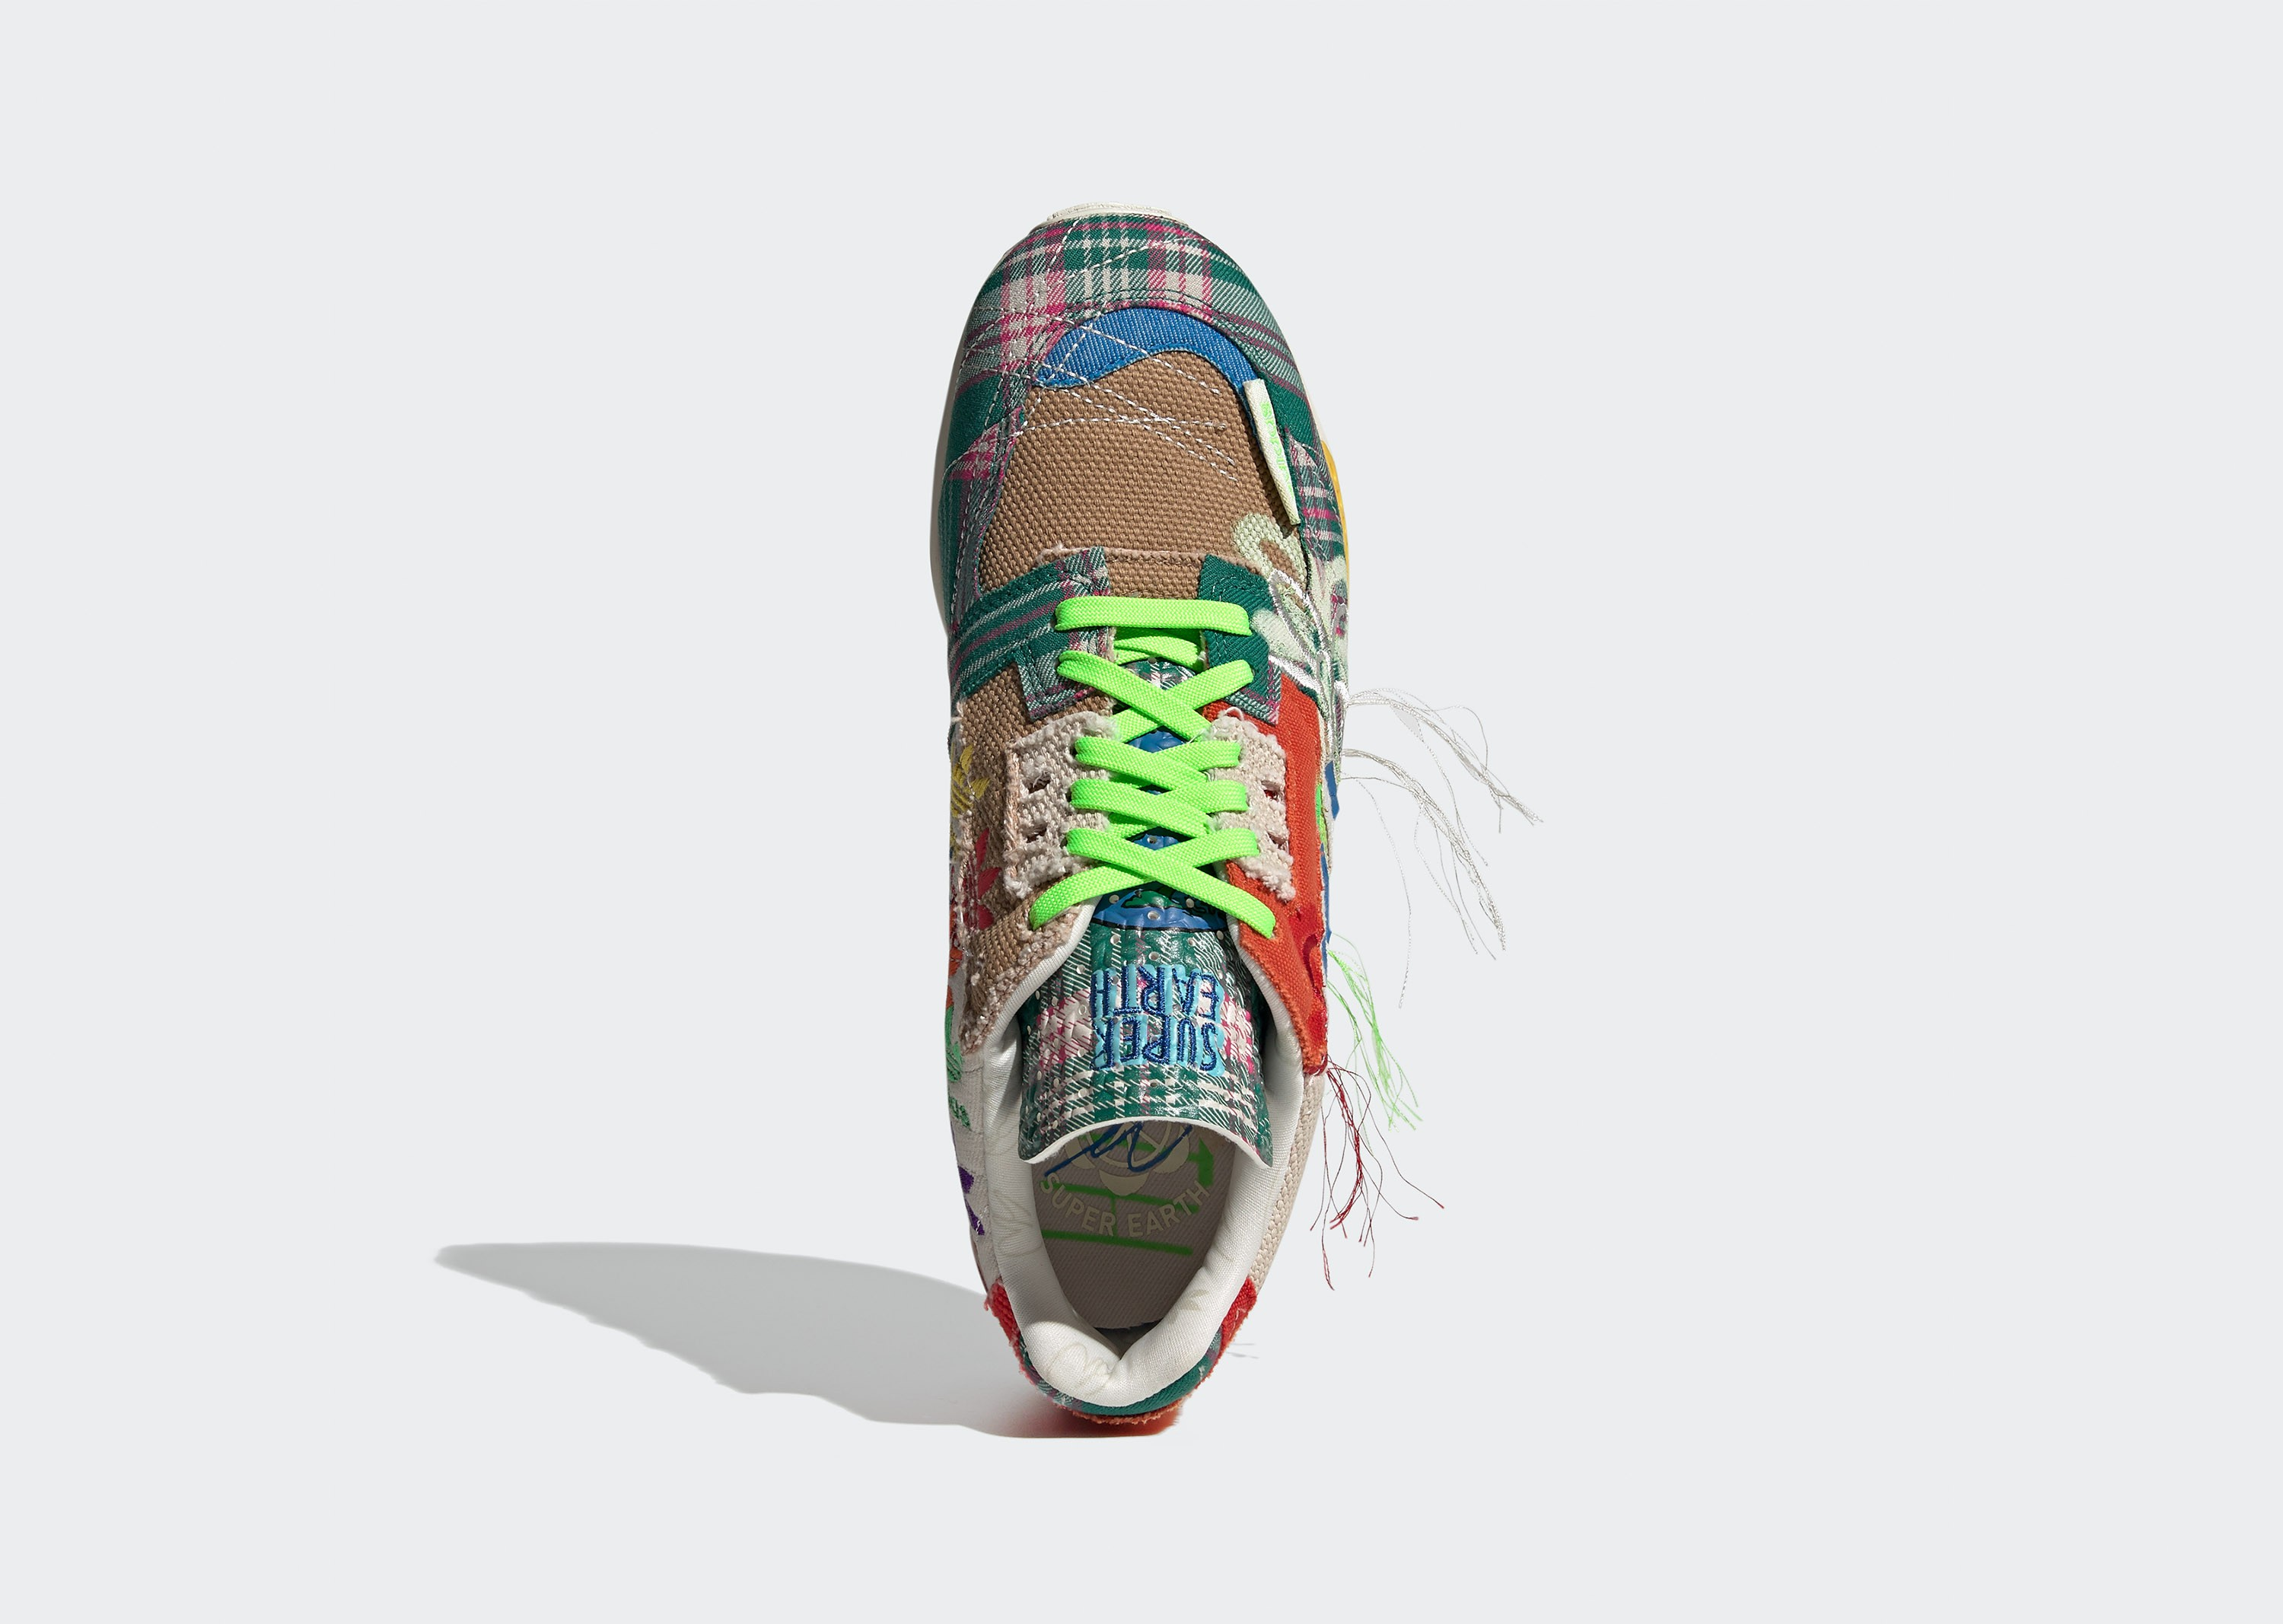 zx_wotherspoon_blog_0000_GZ3088_TPP_eCom